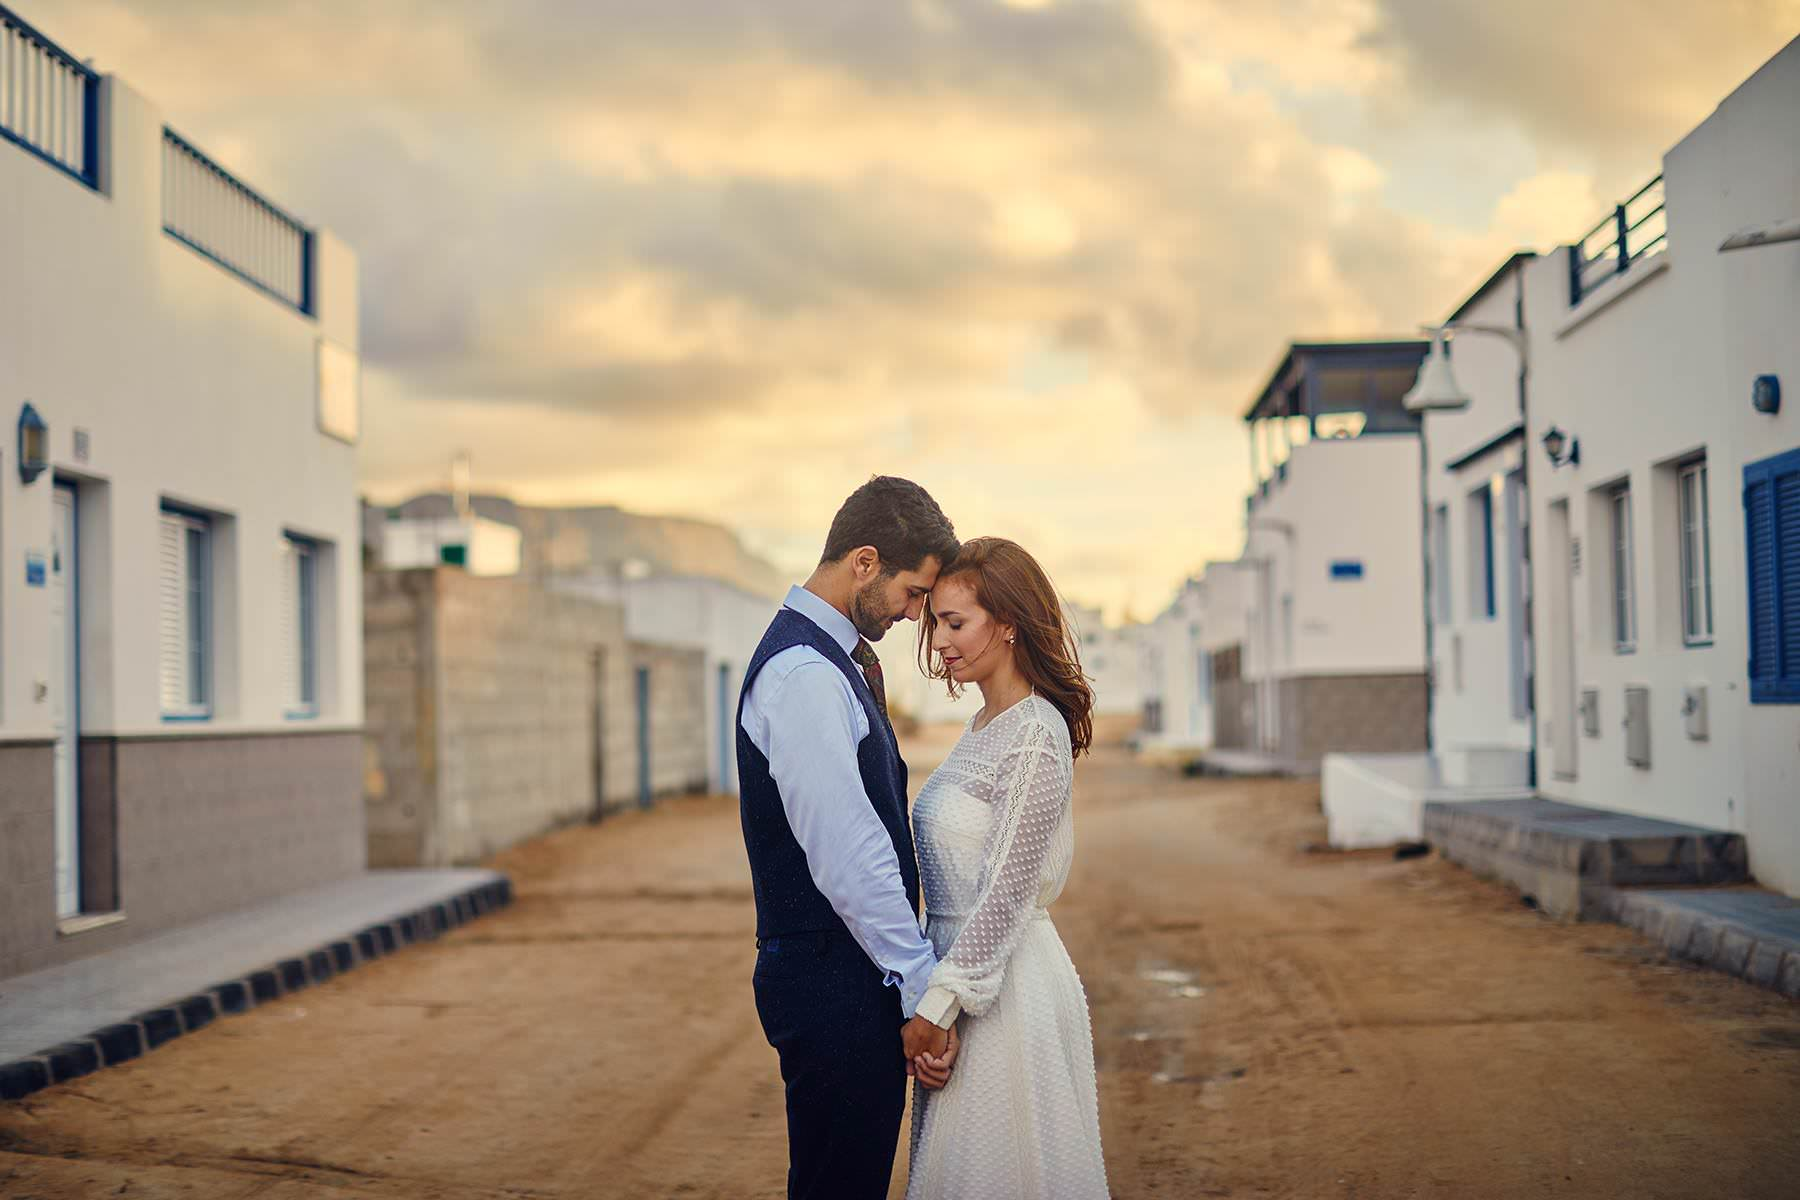 5 tips wedding sunset photos 20